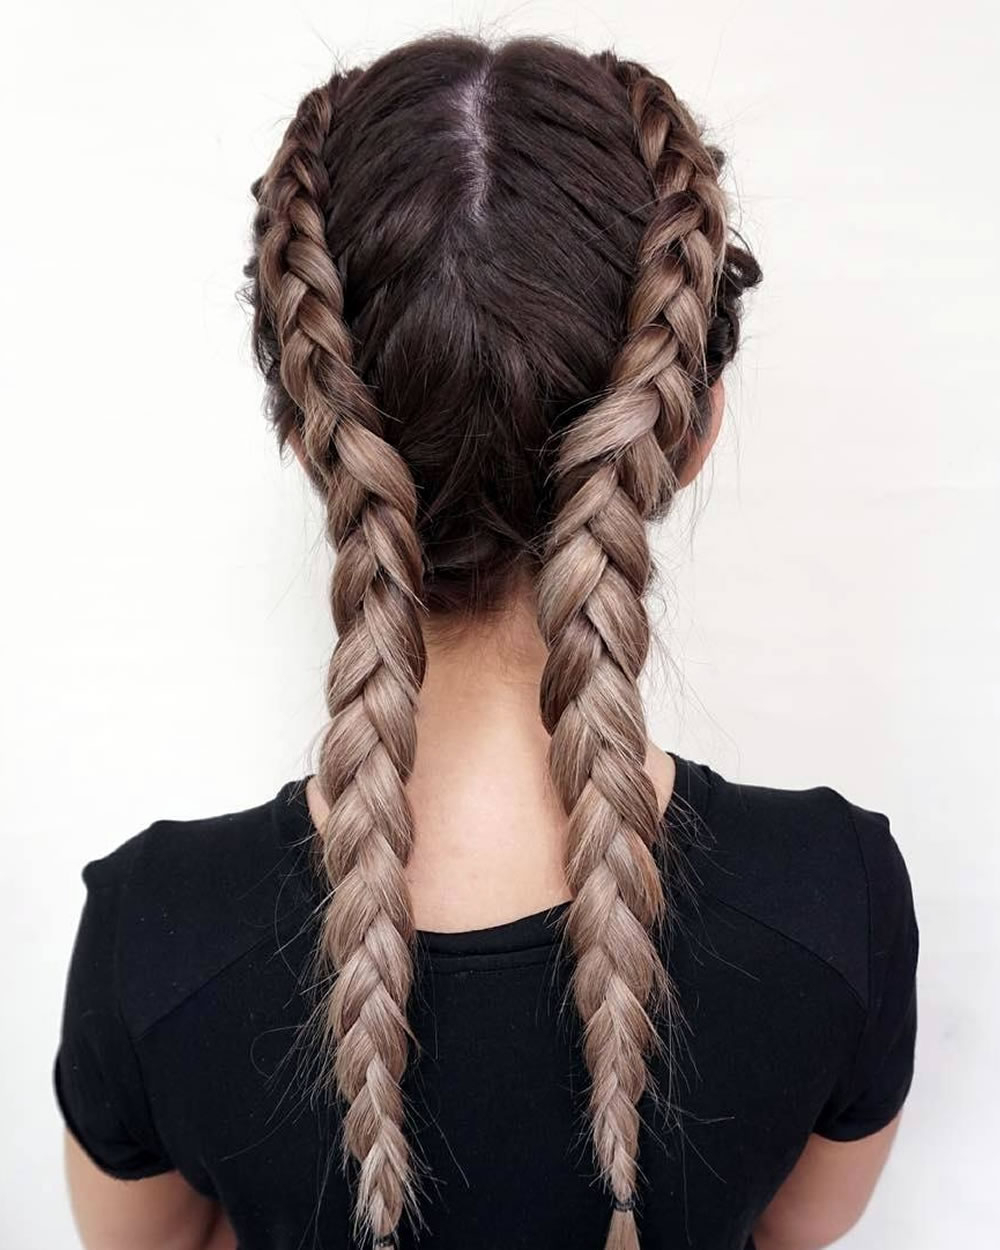 French Braids 2018 (mermaid, Half Up, Side, Fishtail Etc With Well Known Double Half Up Mermaid Braid Hairstyles (View 7 of 20)